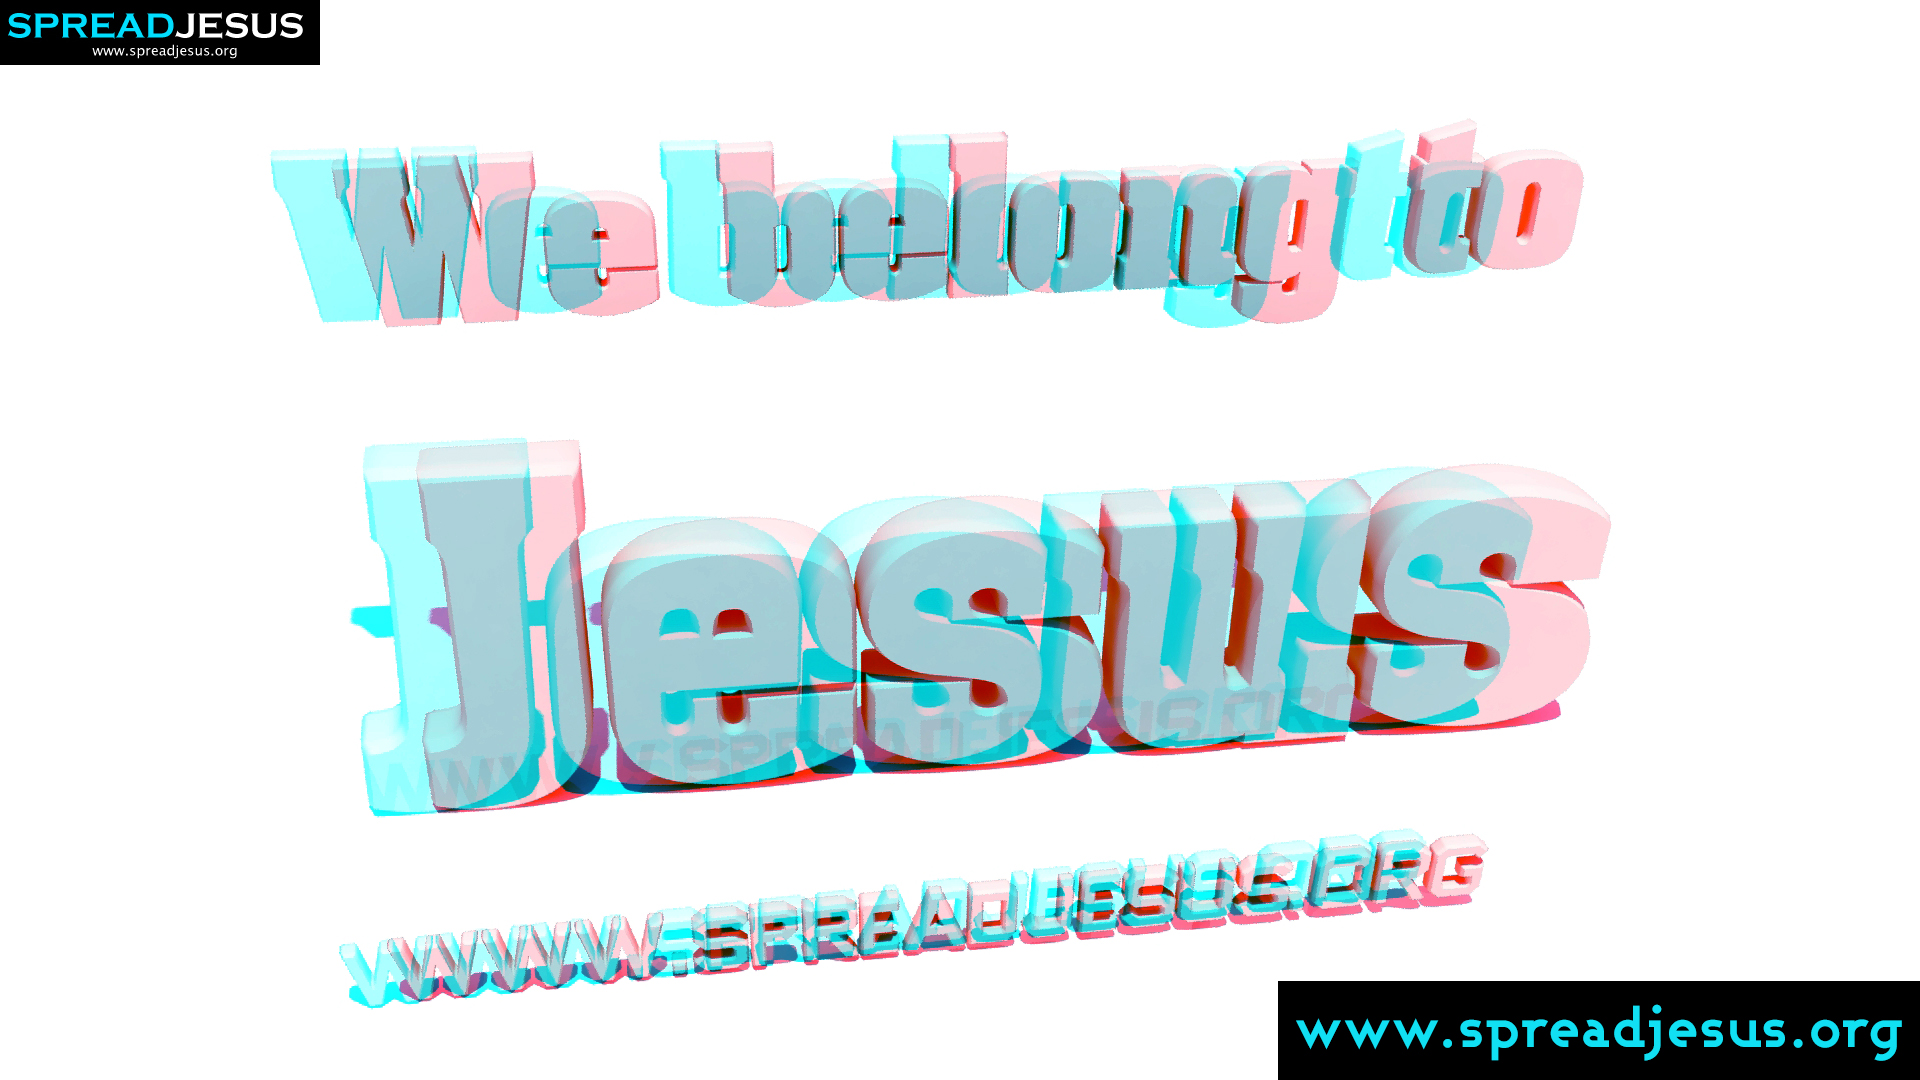 Stereoscopic-3D HD-WALLPAPER WE BELONG TO JESUS-JESUS CHRIST HD-WALLPAPERS FREE DOWNLOAD-www.spreadjesus.org